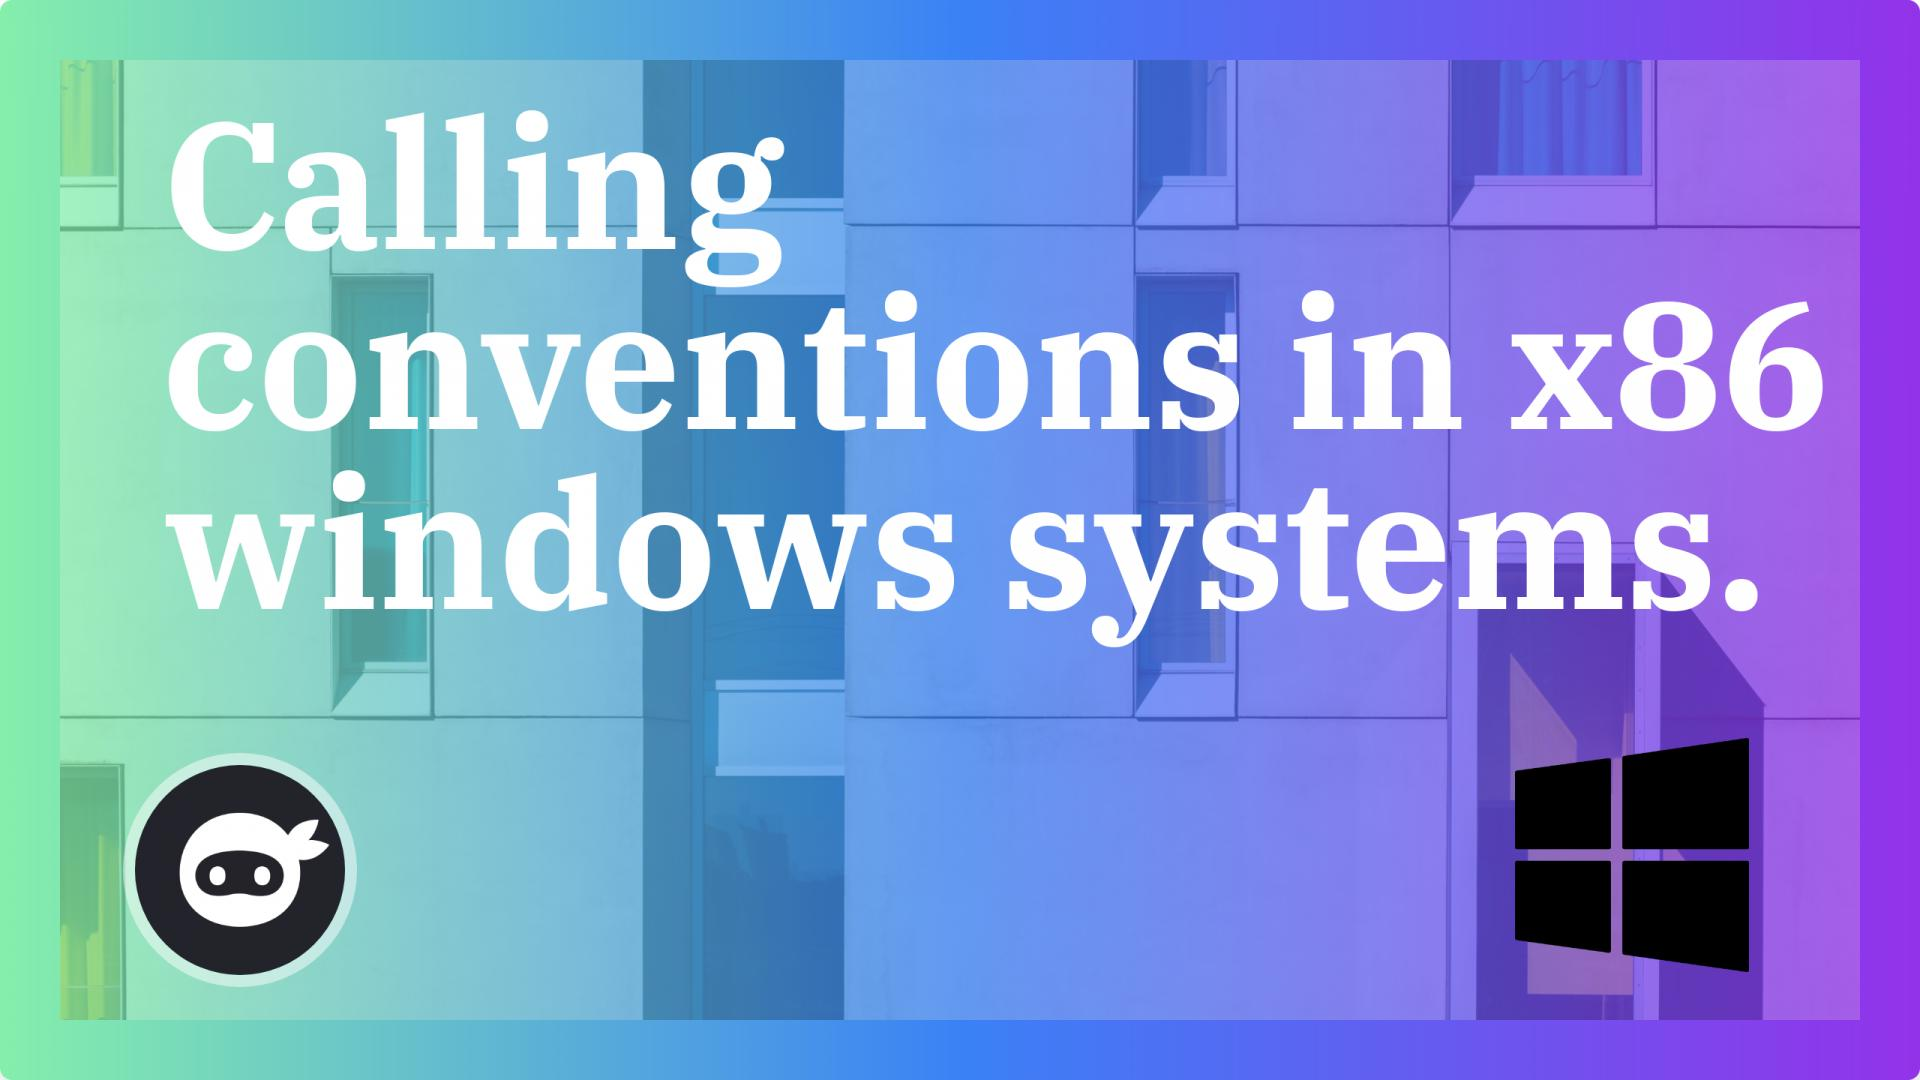 Calling conventions in x86 windows systems.